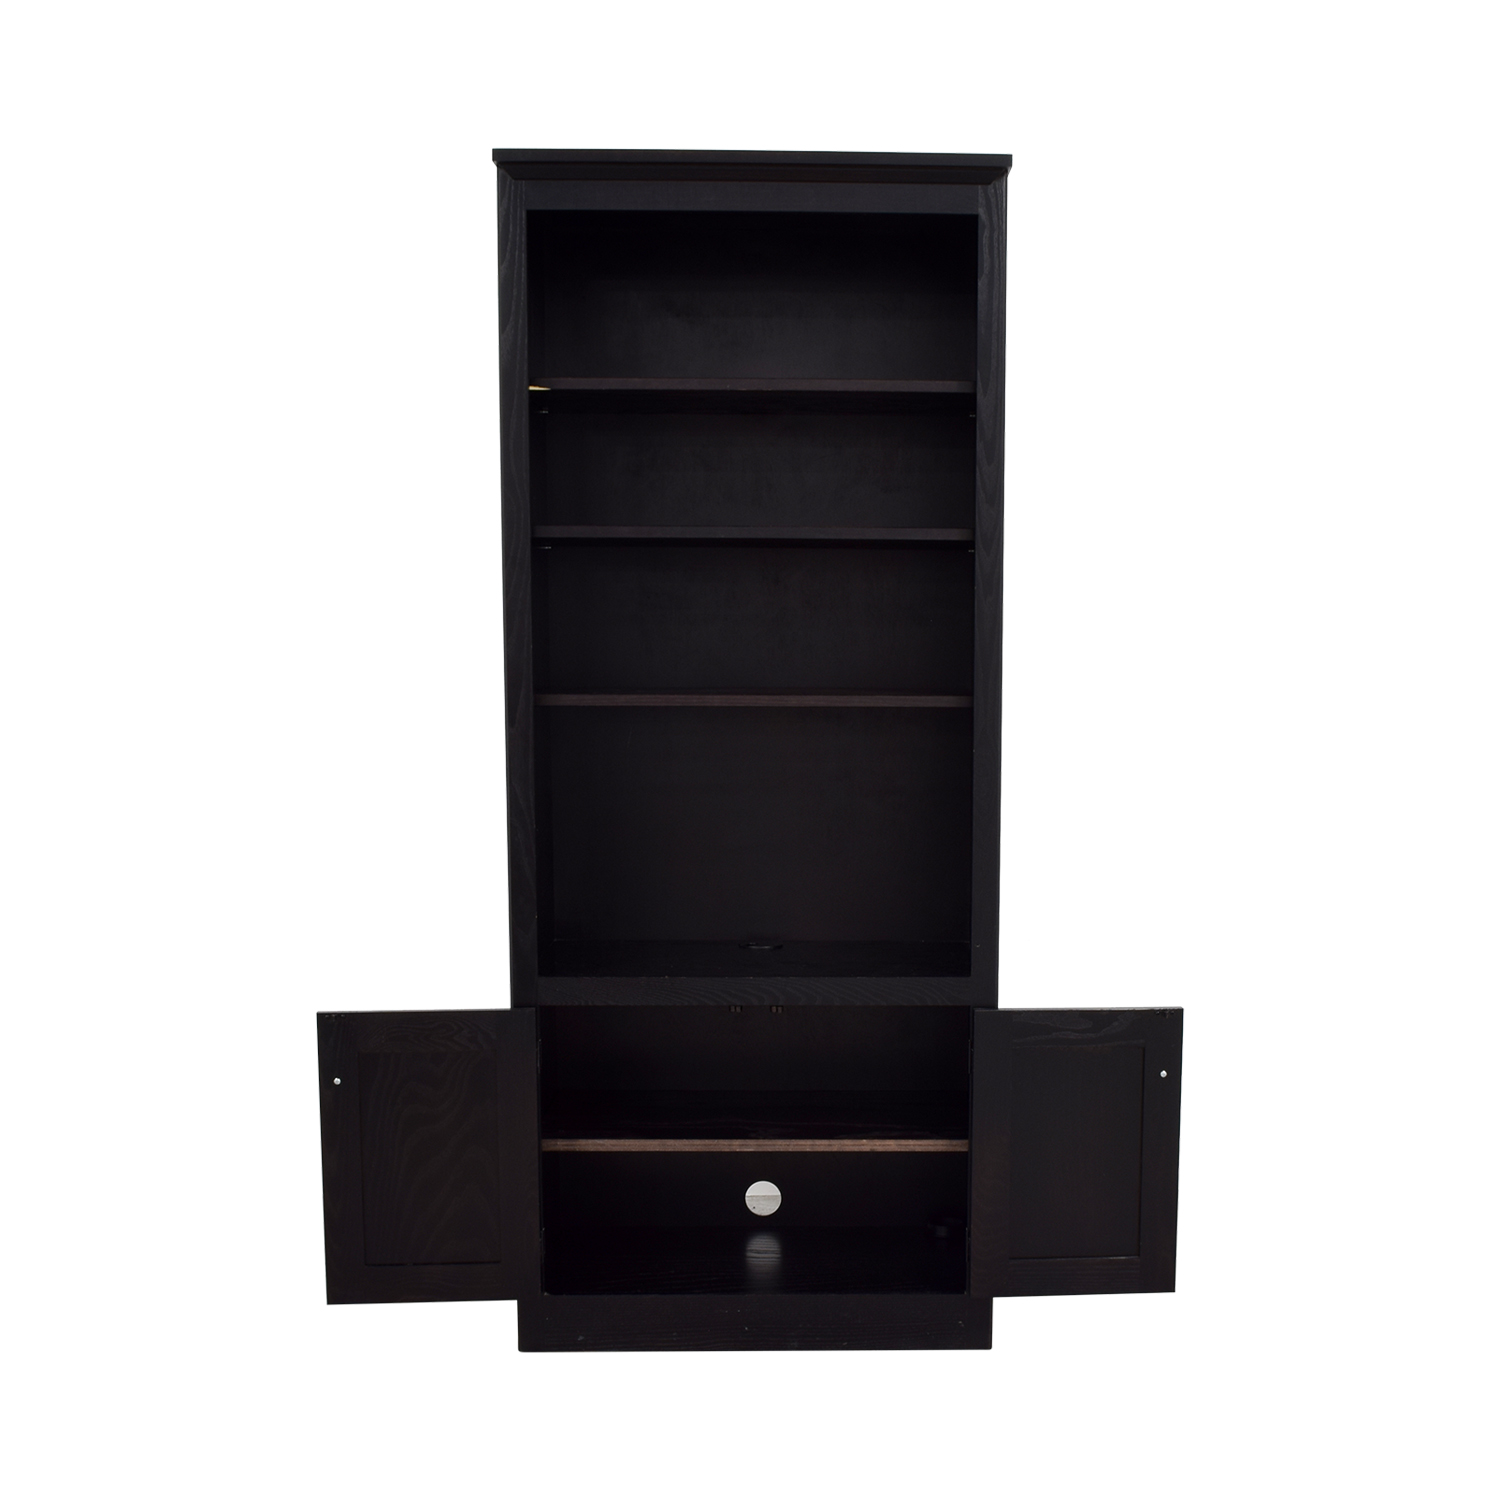 Pottery Barn Pottery Barn Espresso Bookshelf with Cabinet coupon